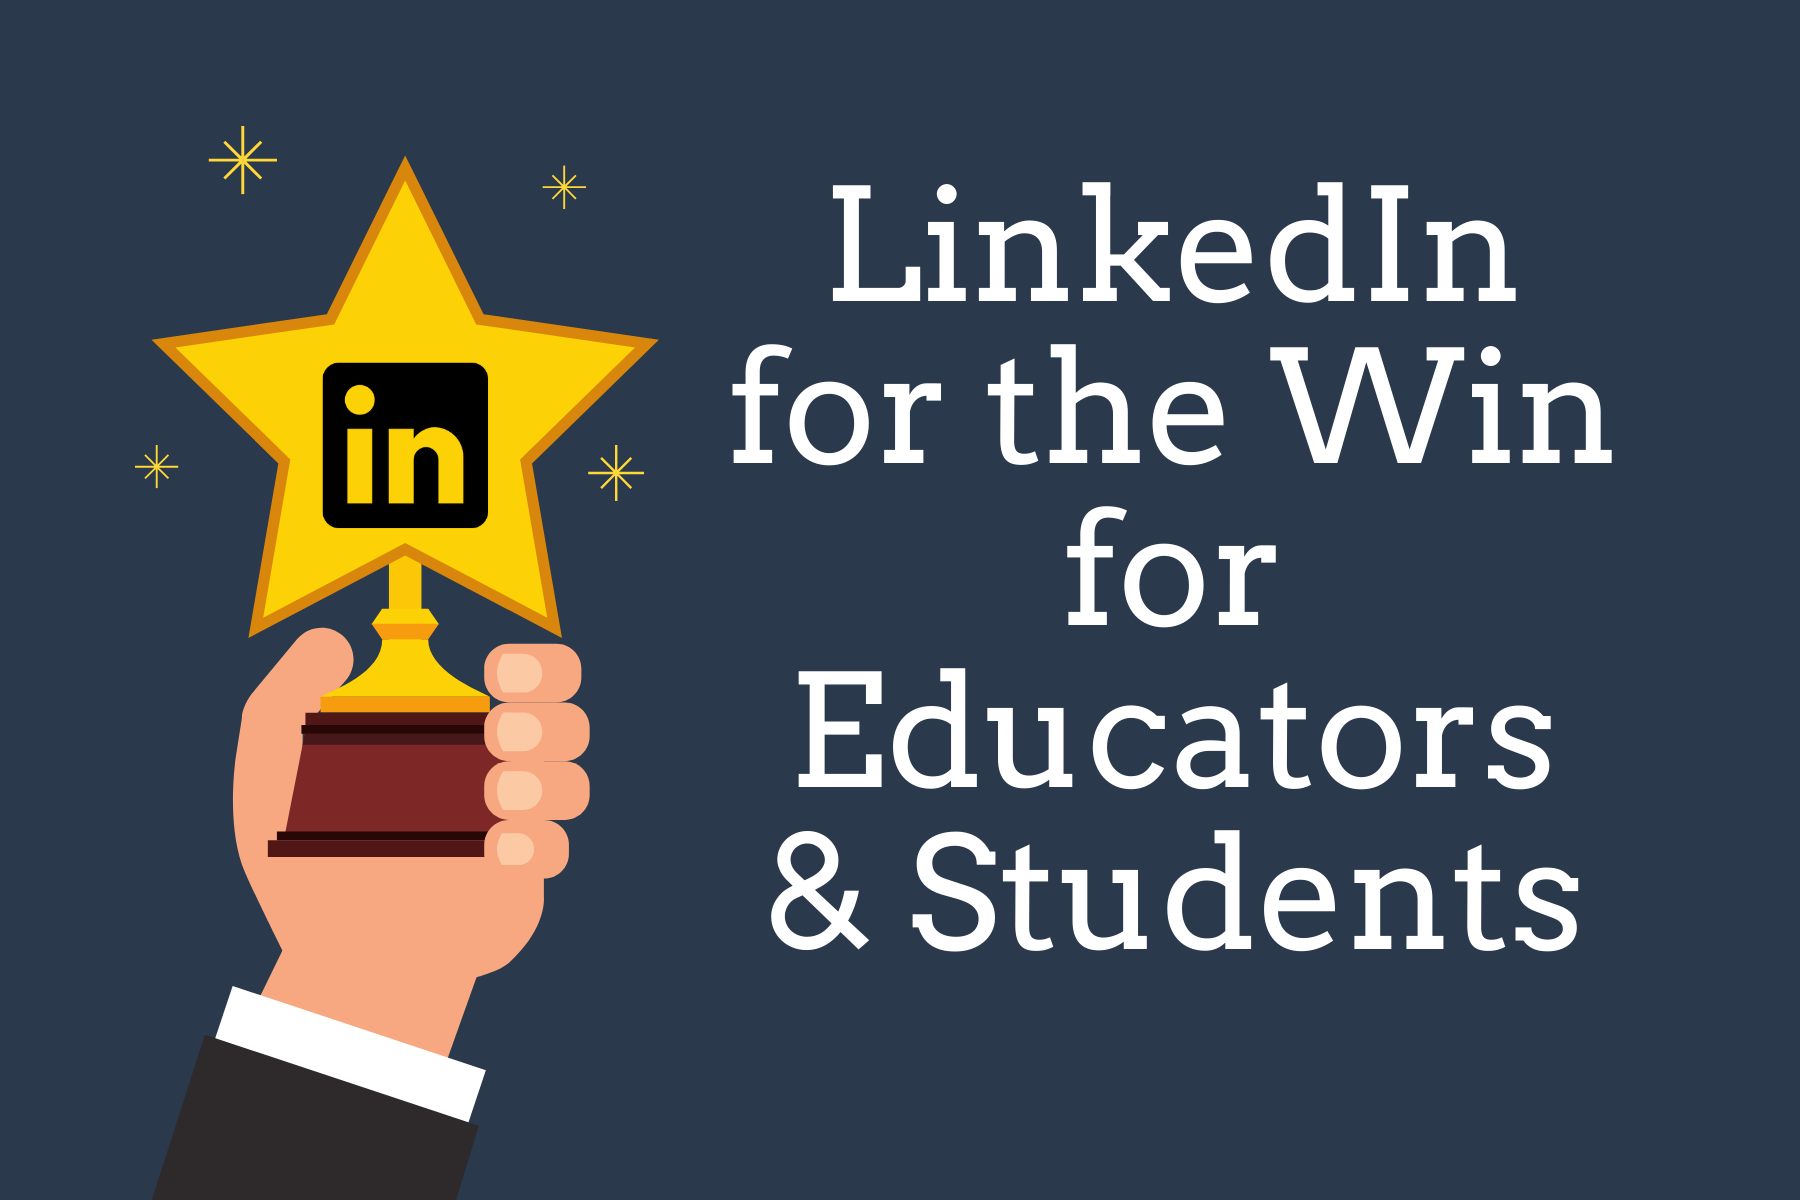 LinkedIn for the Win for Educators & Students